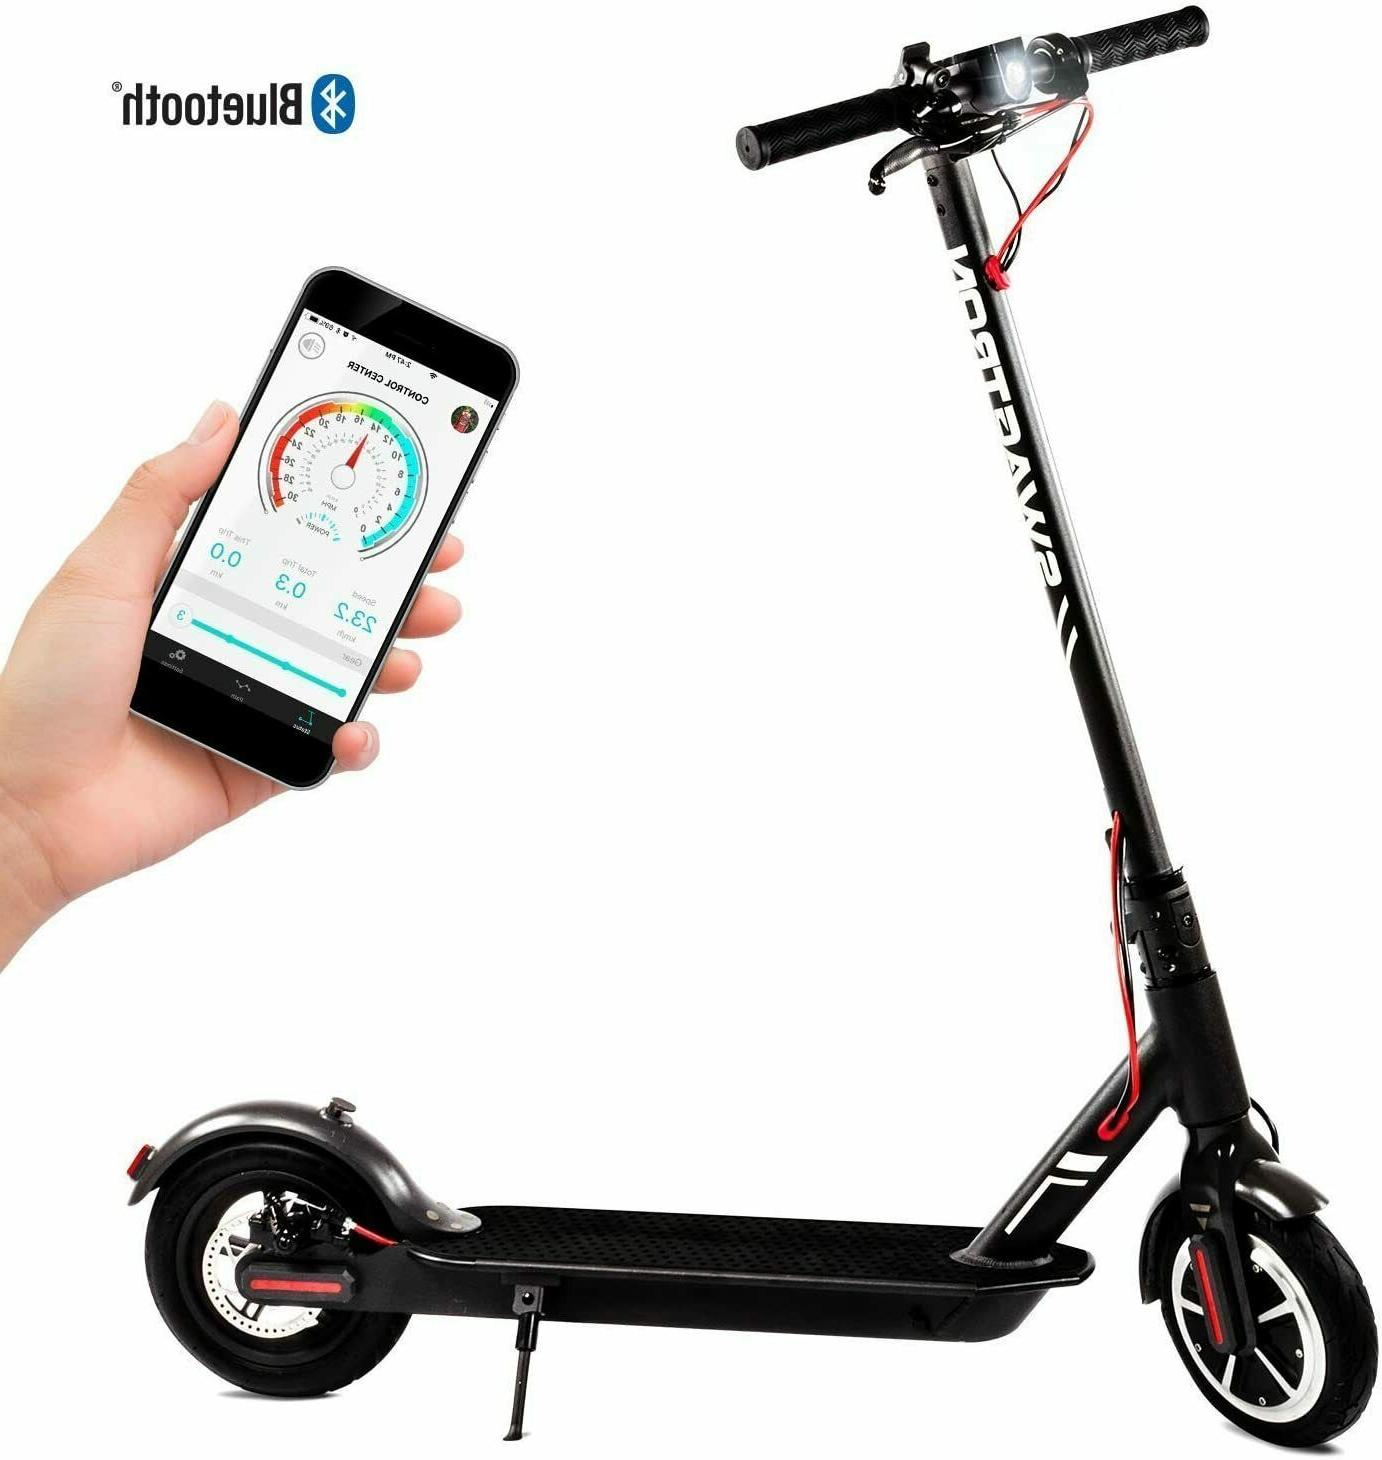 swagger 5s high speed electric scooter cruise